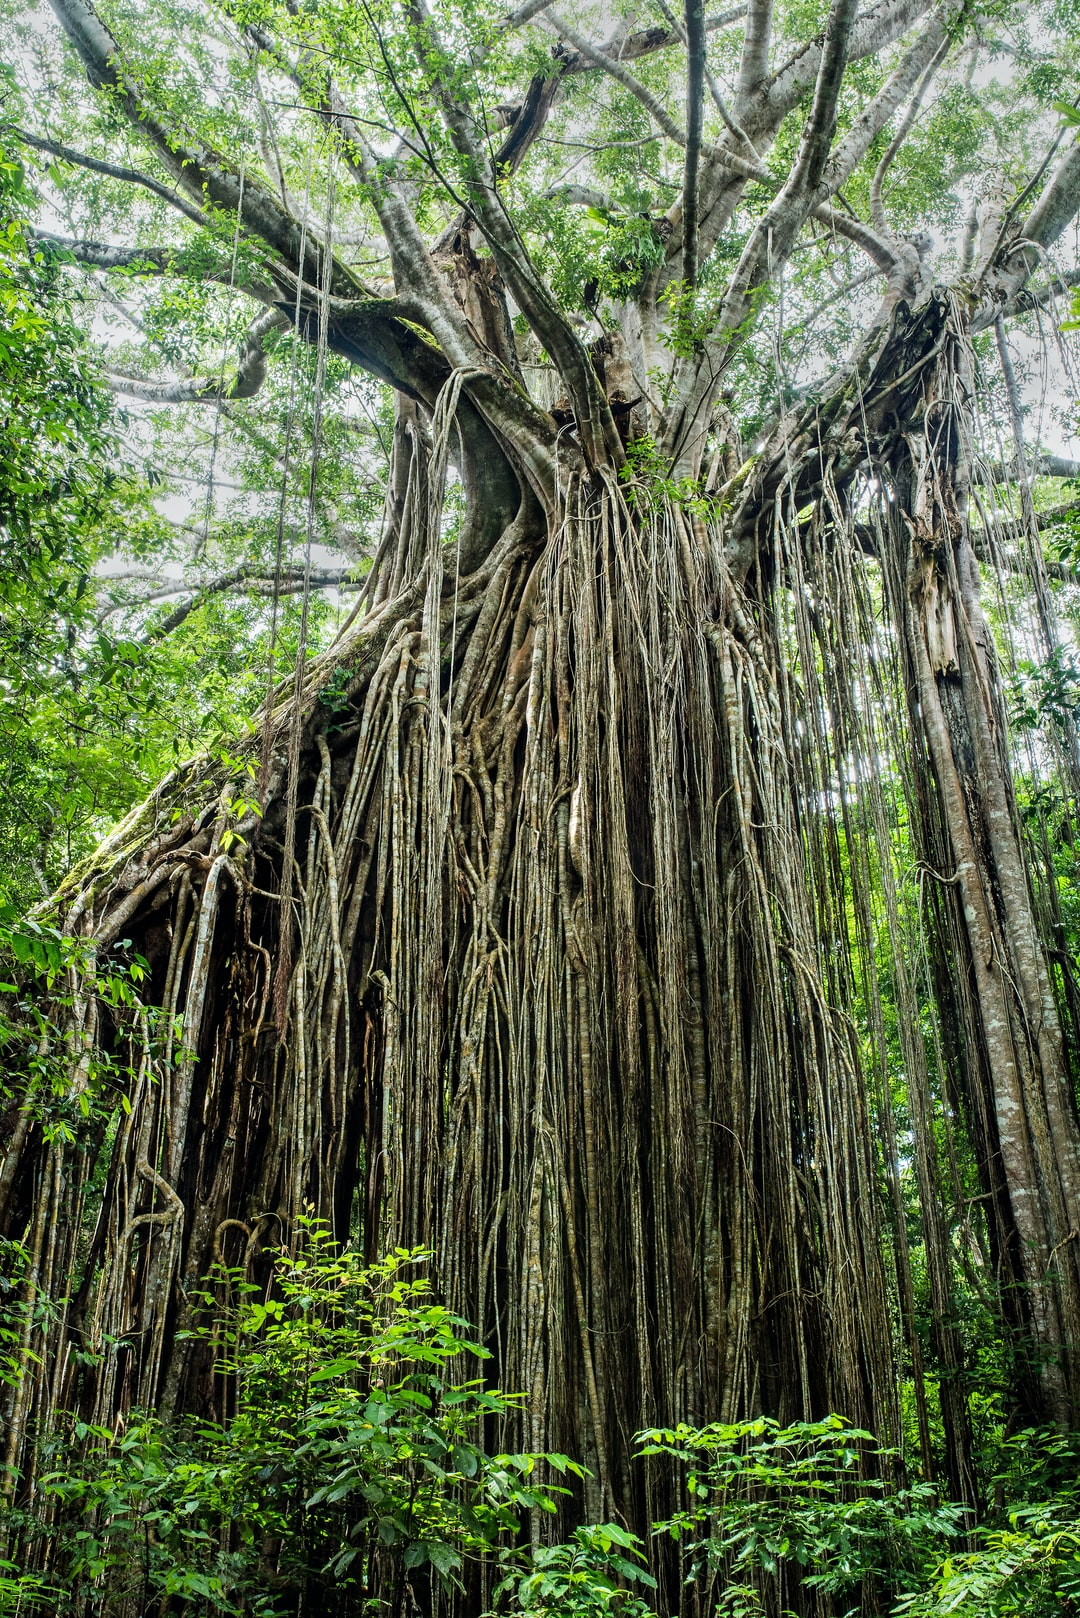 Curtain fig tree, Atherton Tablelands, Australia. How would this fig tree form a curtain of roots like this? A tree that may have been dead already would have blown over in the forest, and ended up at an angle propped up against another tree. A bird that had eaten figs elsewhere would have landed on this slanted tree, and deposited fig seeds. One of these germinated and grew roots down along the the slanting tree trunk, as well as growing roots straight down, forming a curtain of roots. The original slanting tree has since rotten away and disappeared.